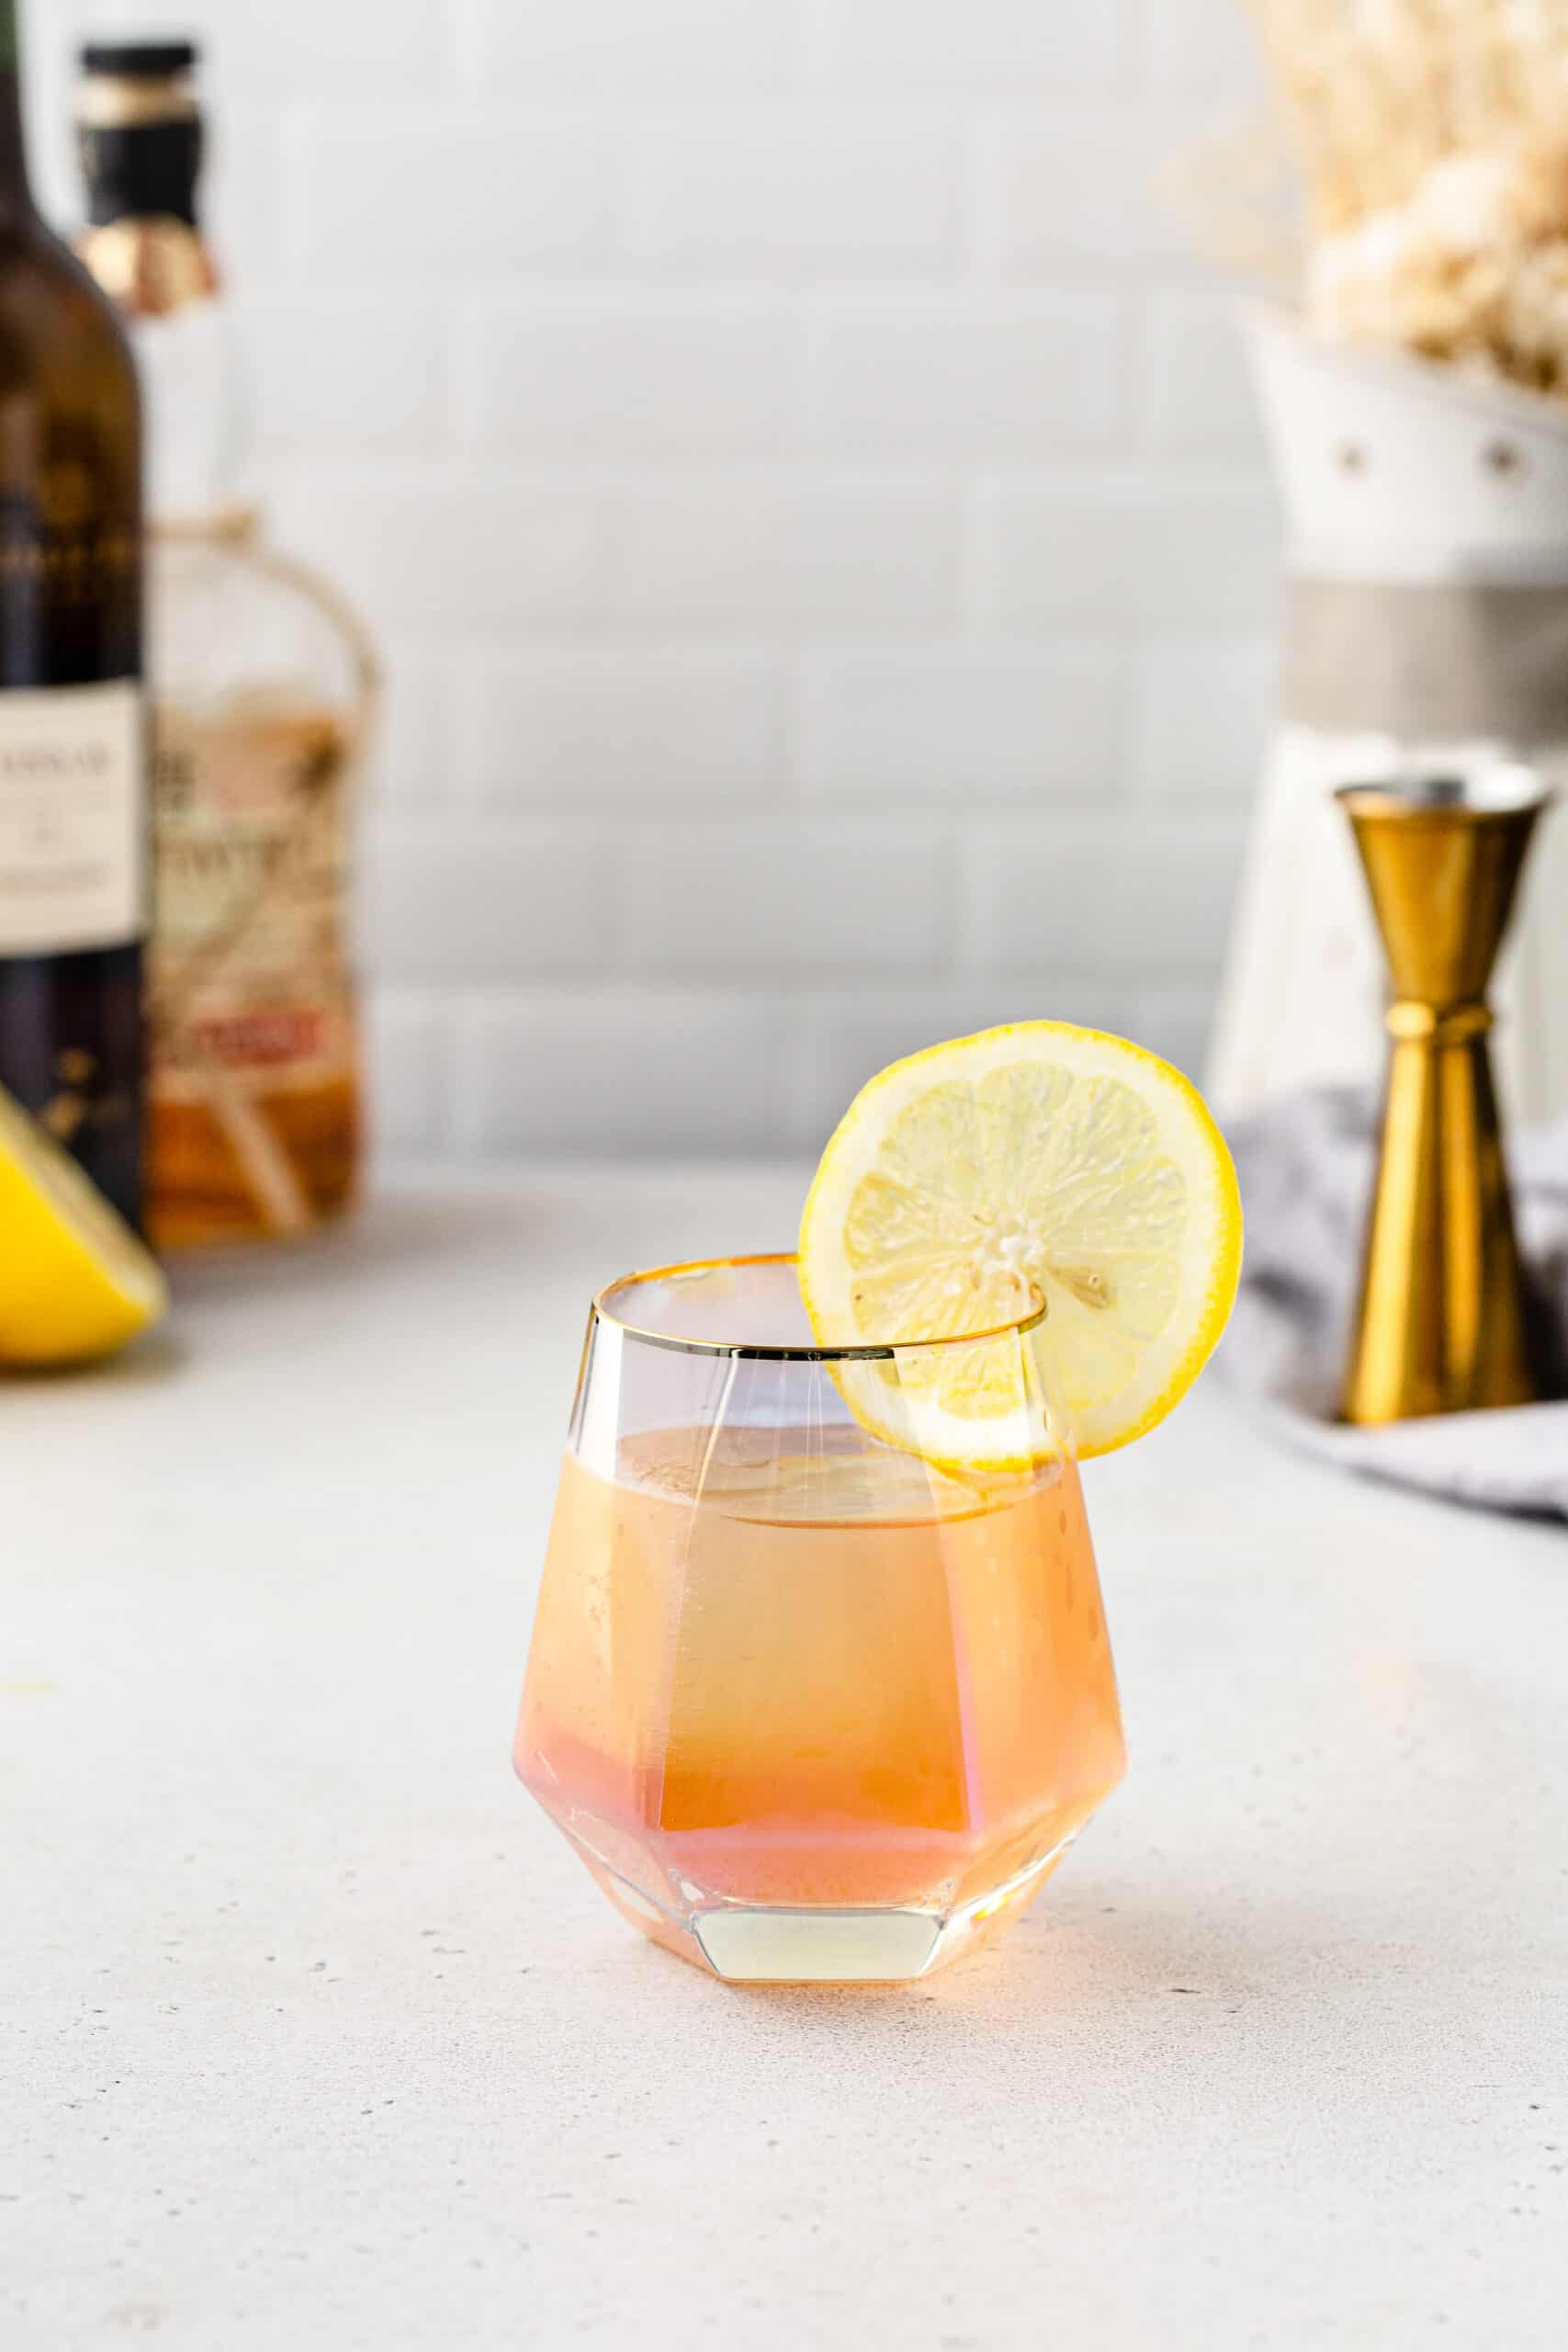 sherry and rum cocktail in an iridescent cocktail glass